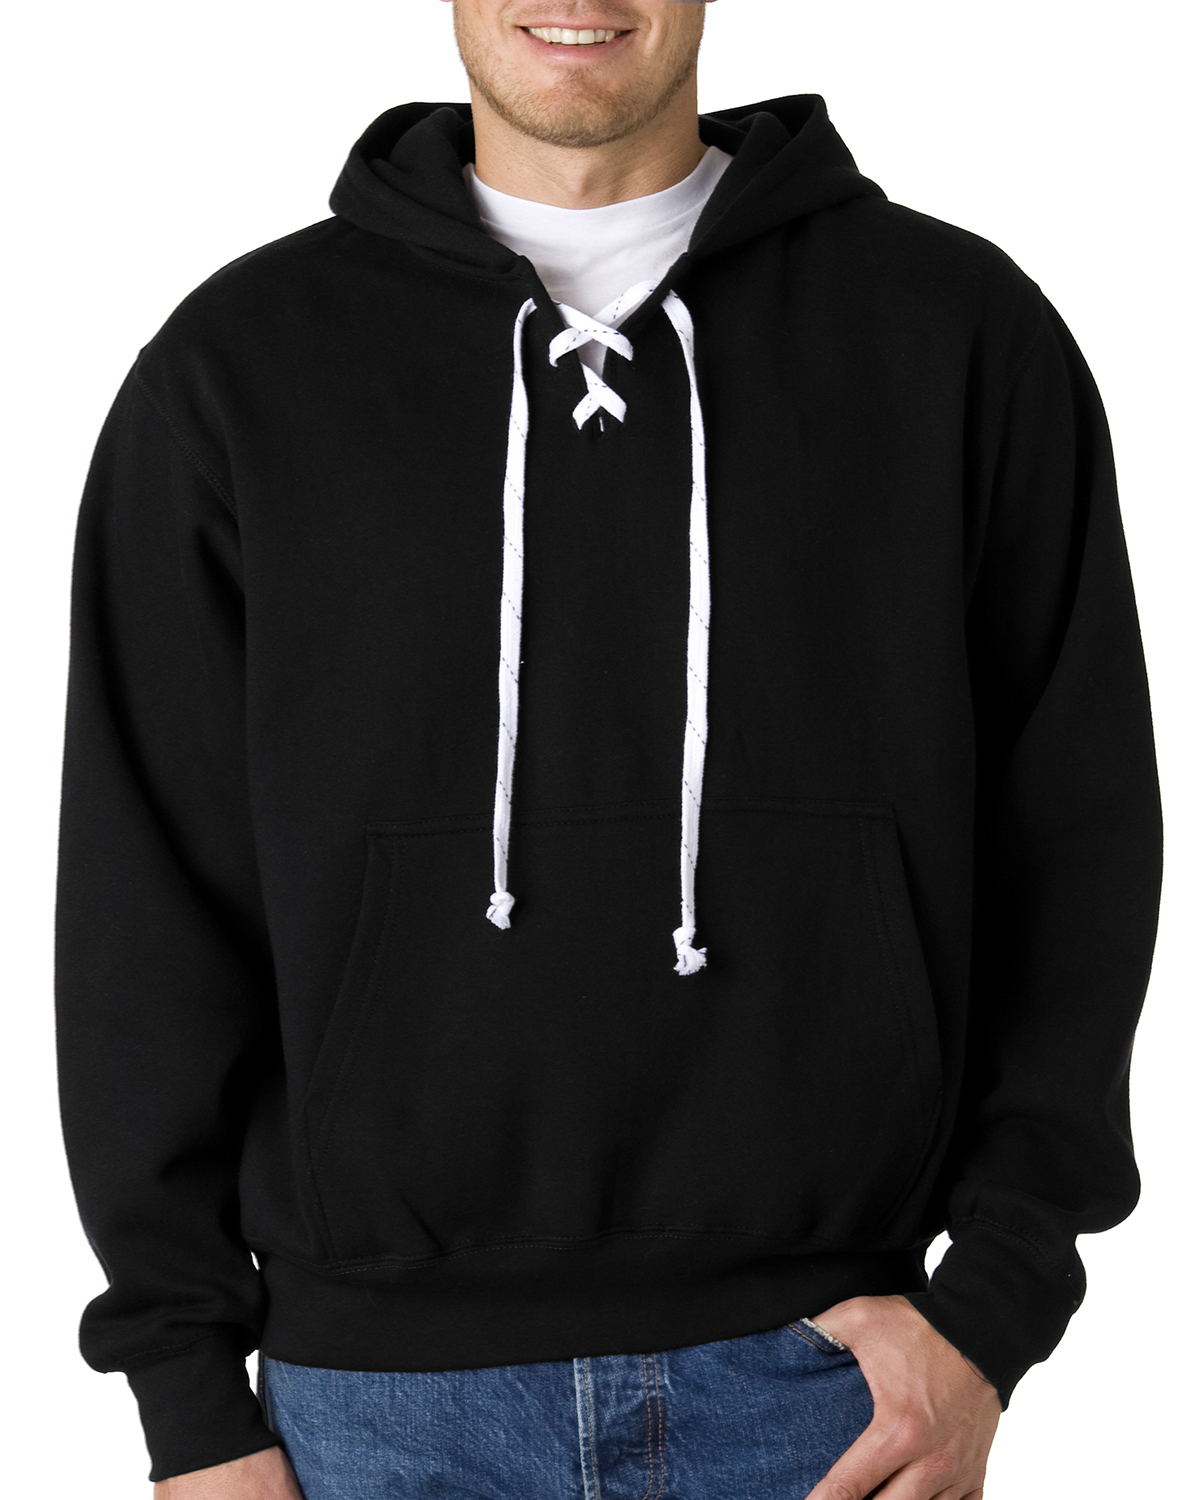 Weatherproof 7476 Hooded Hockey Sweatshirt